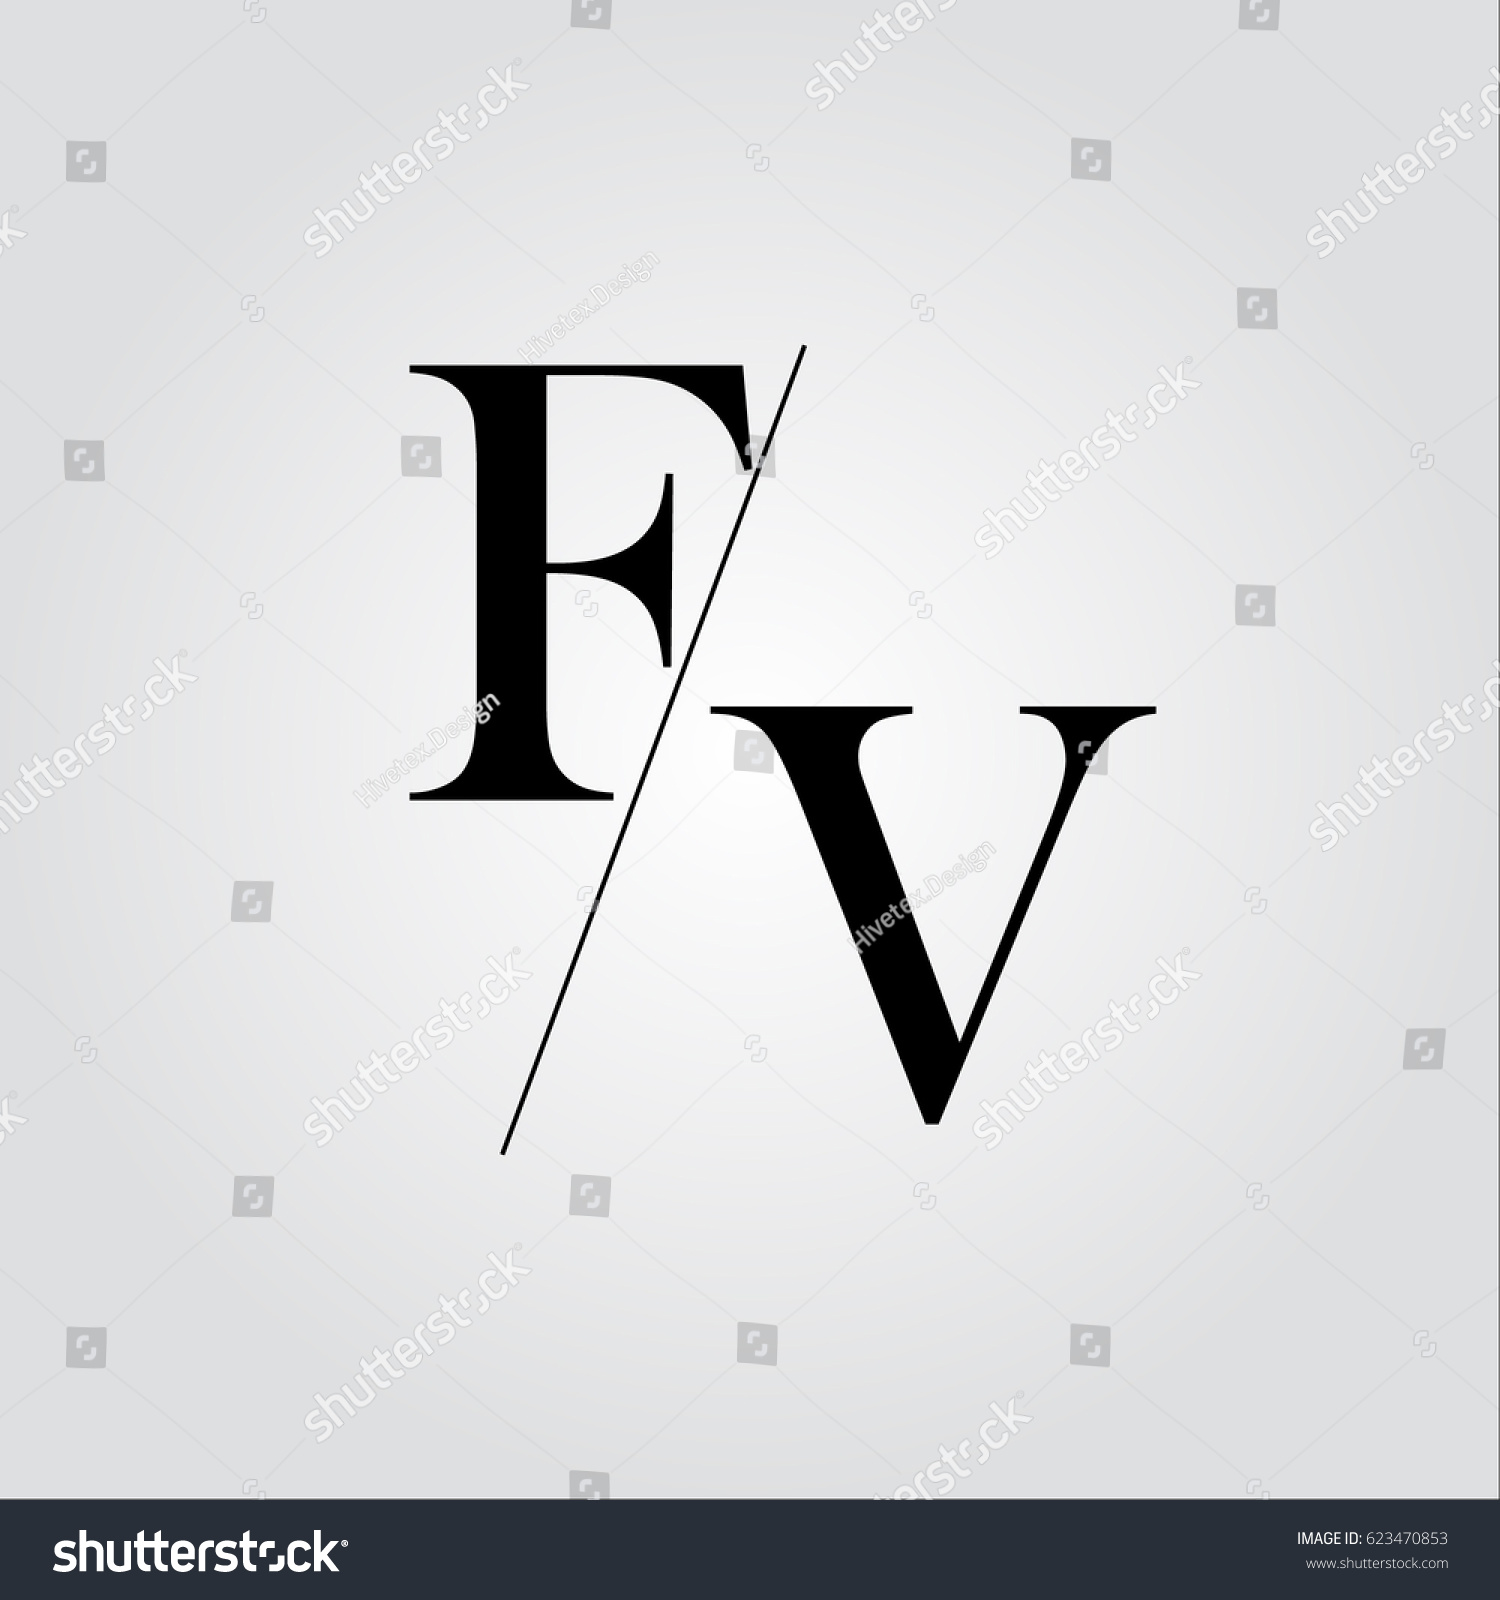 fv logo stock vector royalty free 623470853 shutterstock